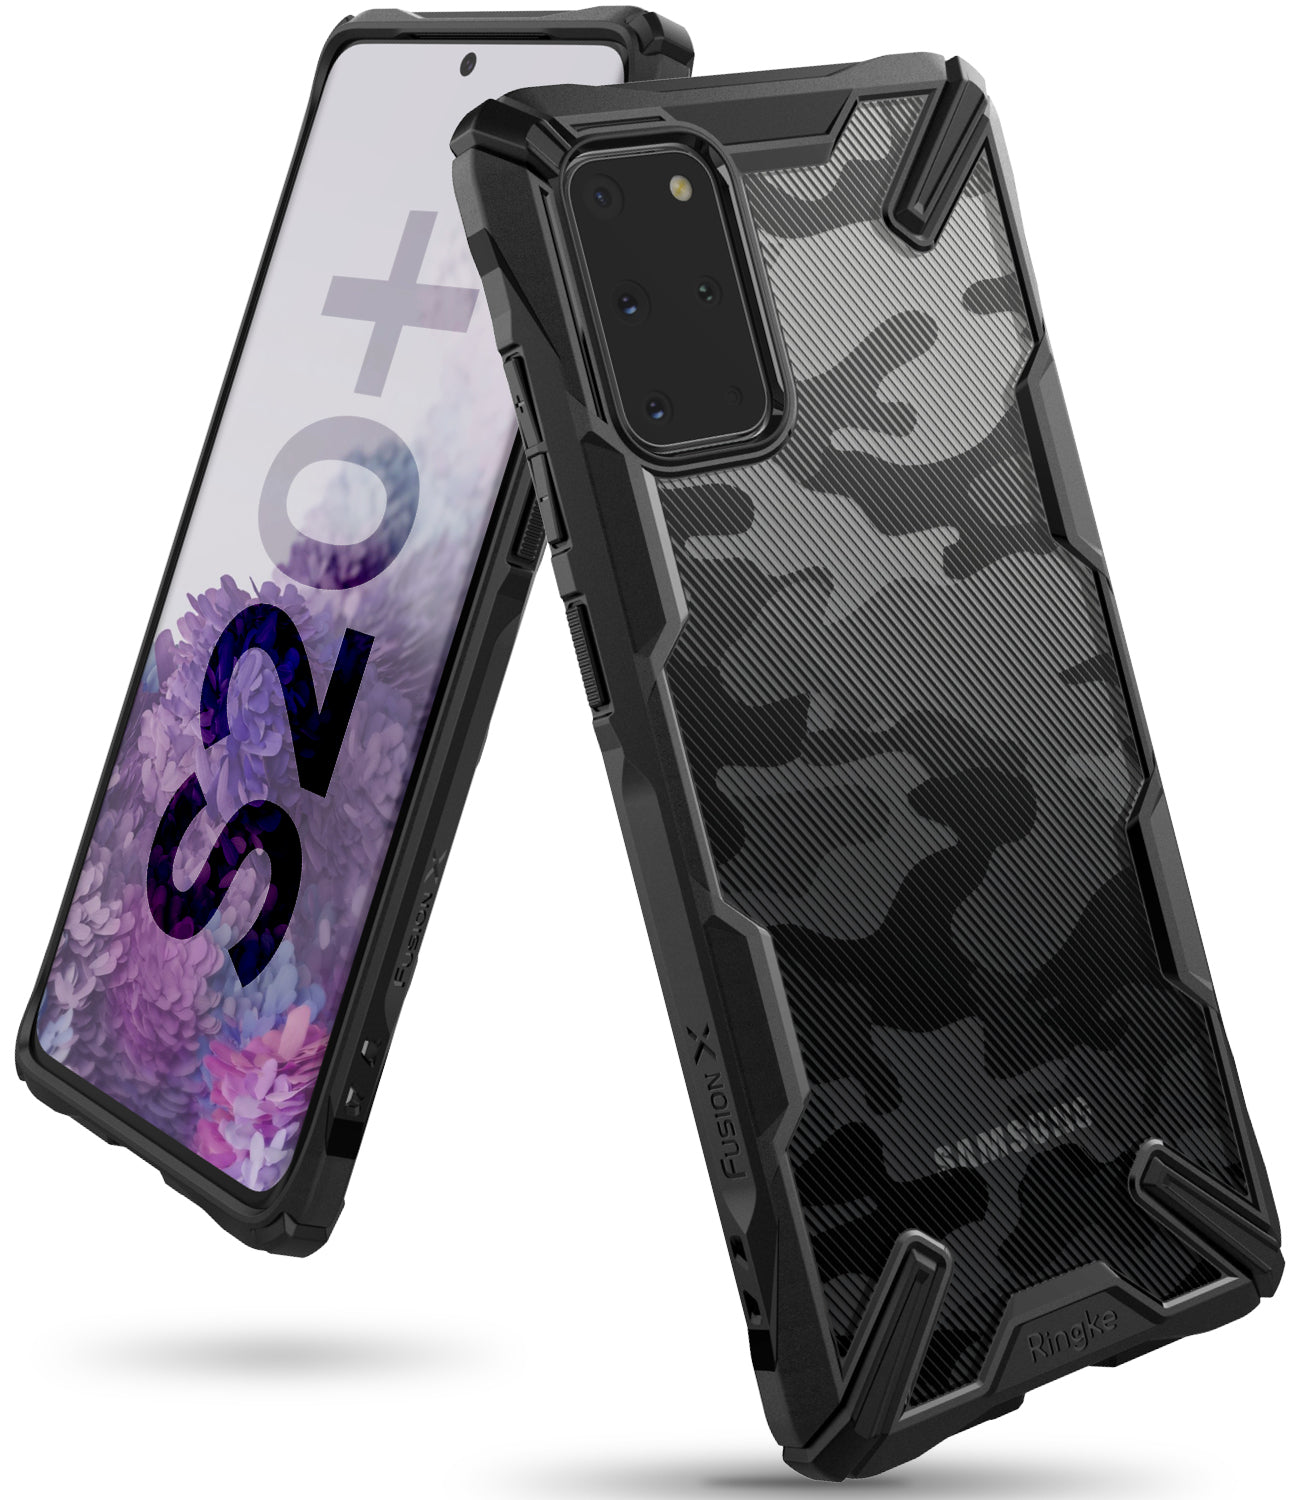 Ringke Galaxy S20 Plus Fusion-X Case Camo Black Color